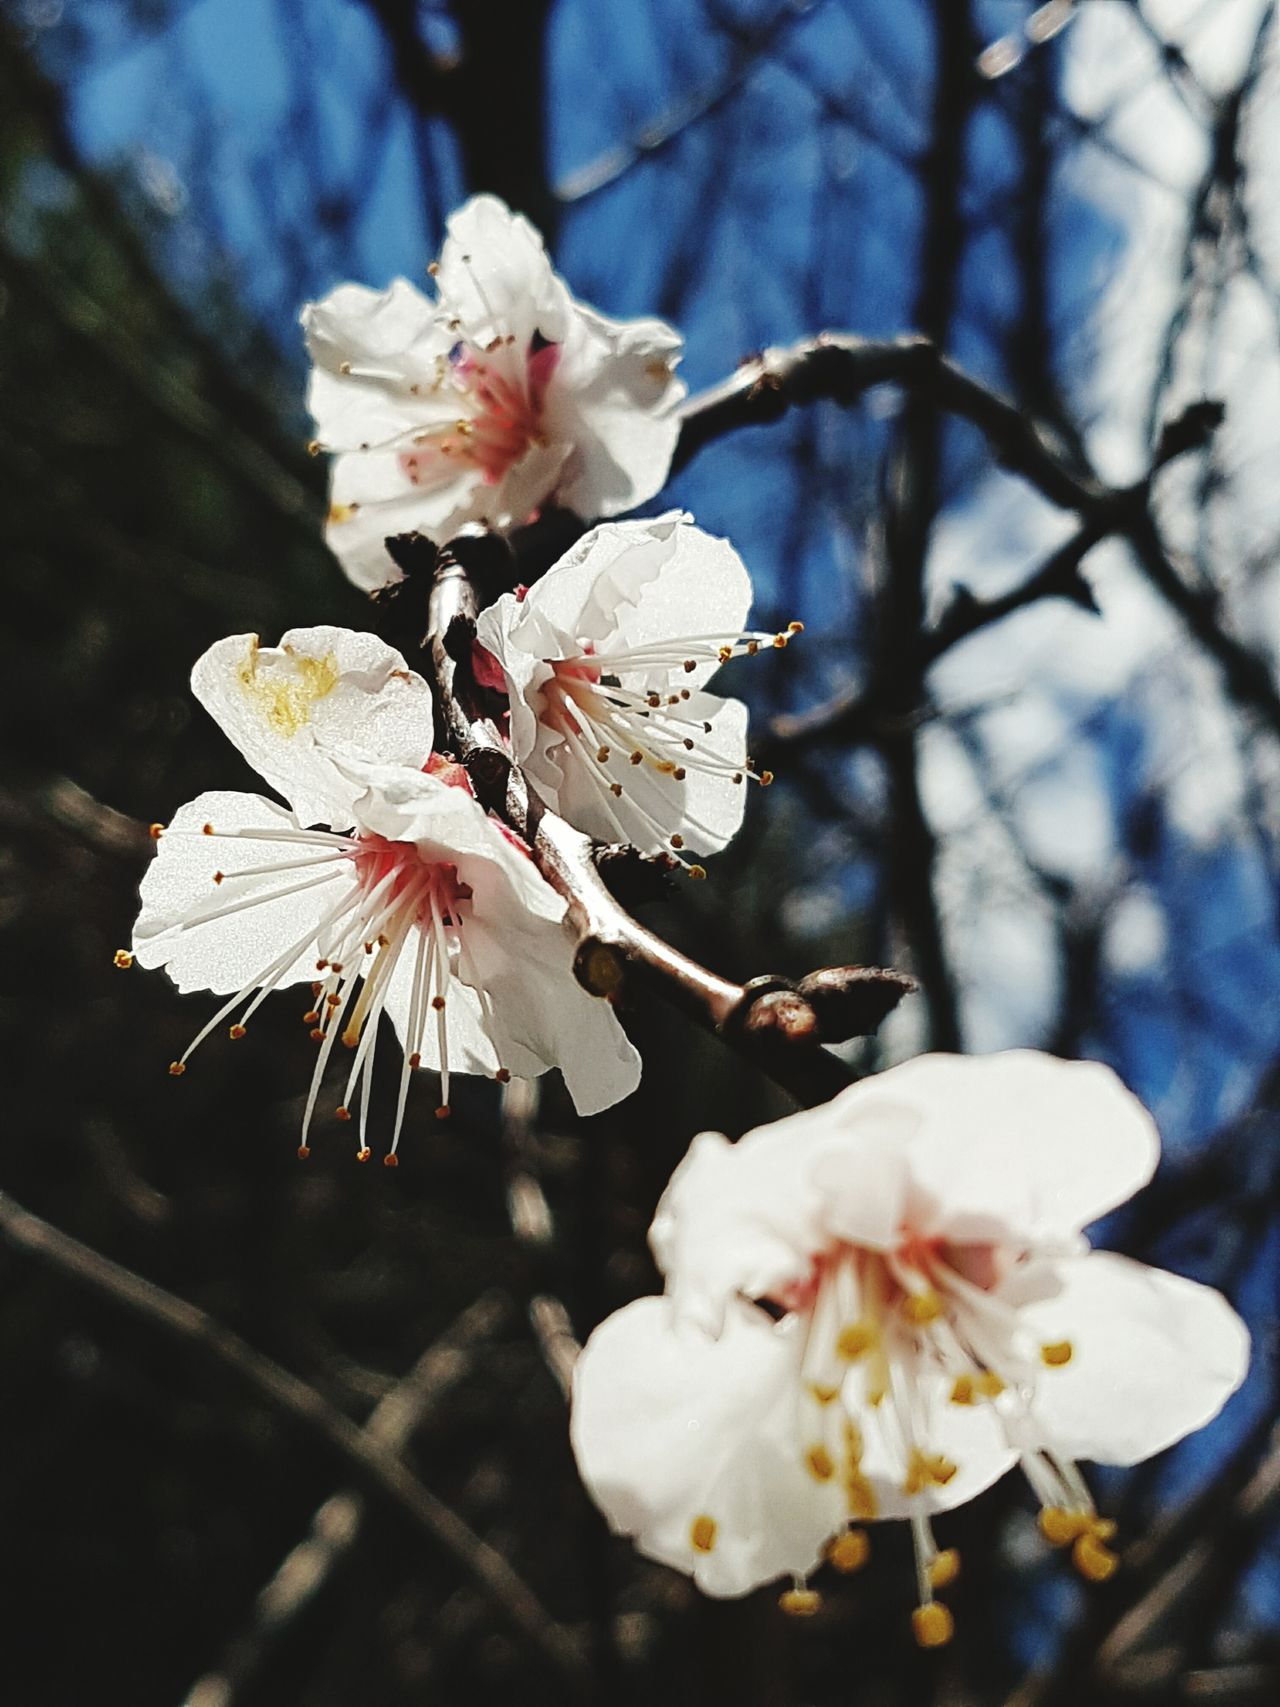 Apricot Blossoms Blossom Freshness Sunlight Flower Head Springtime Spring Outdoors Tree Beauty In Nature Close-up Fragility